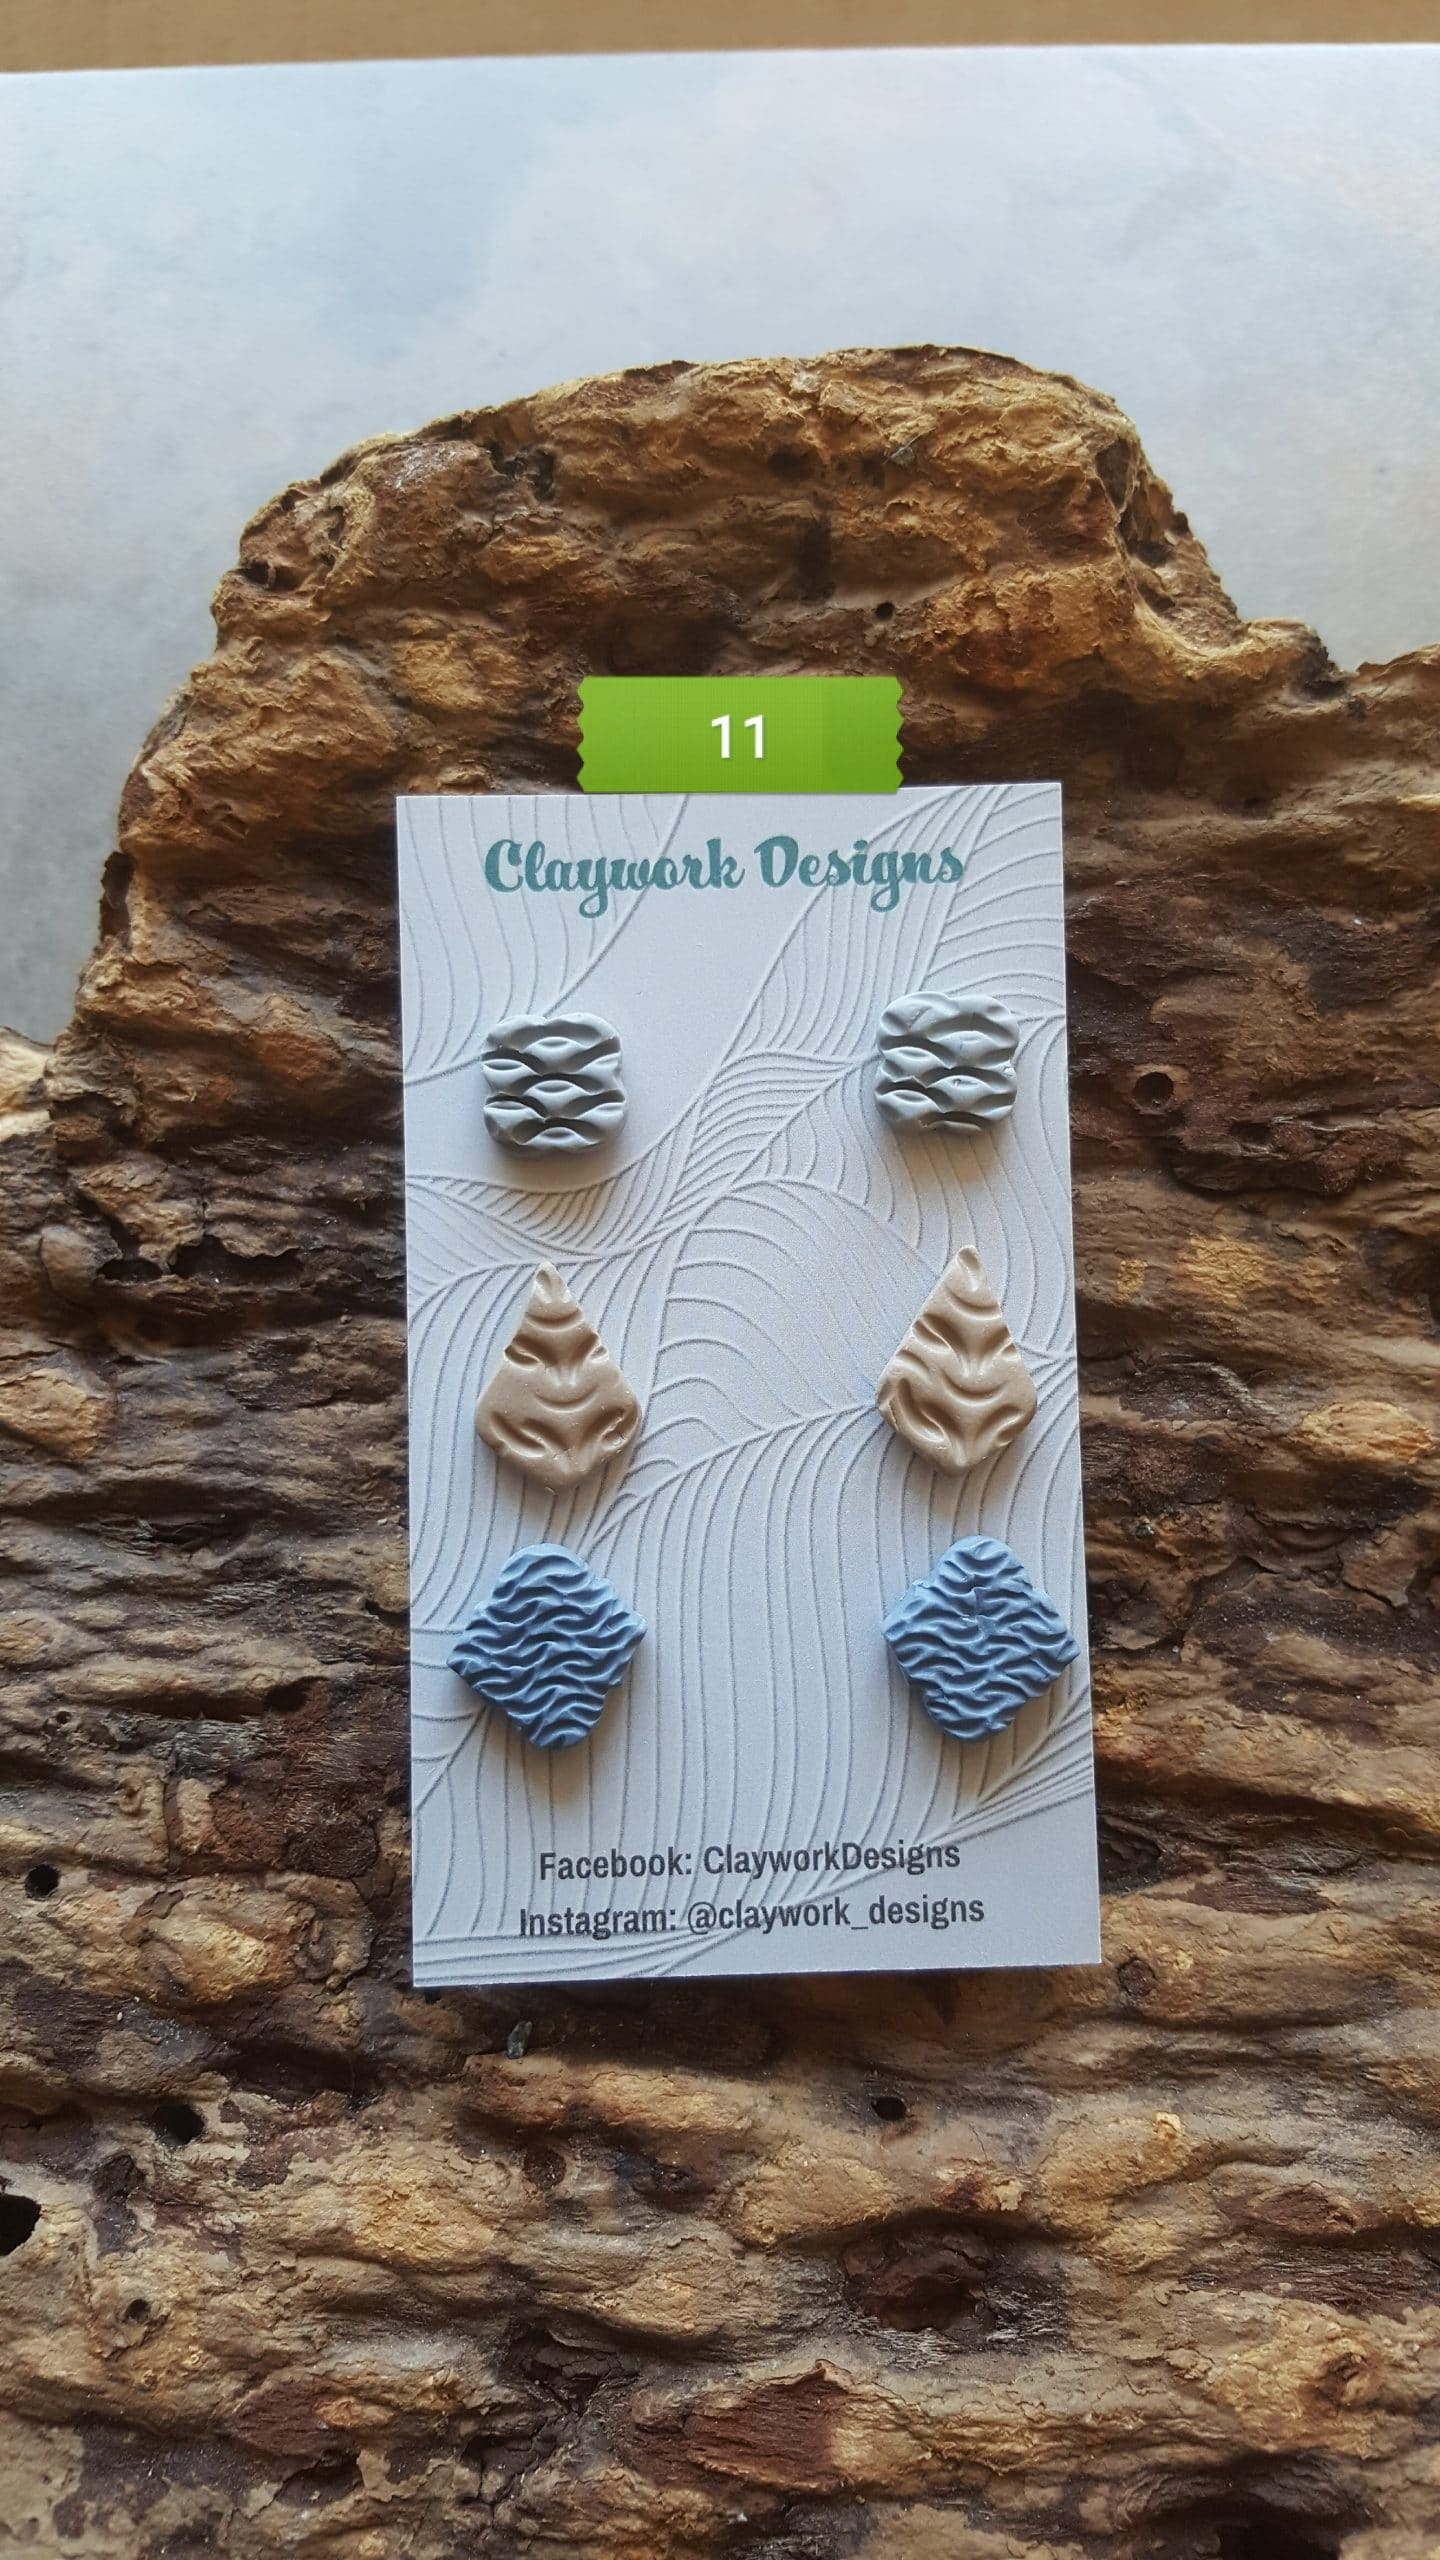 Wirework Designs | Handcrafted chainmaille jewellery and chainmaille products | Chainmaille Weave Stud Earring - 3 Packs | 20210620_172438